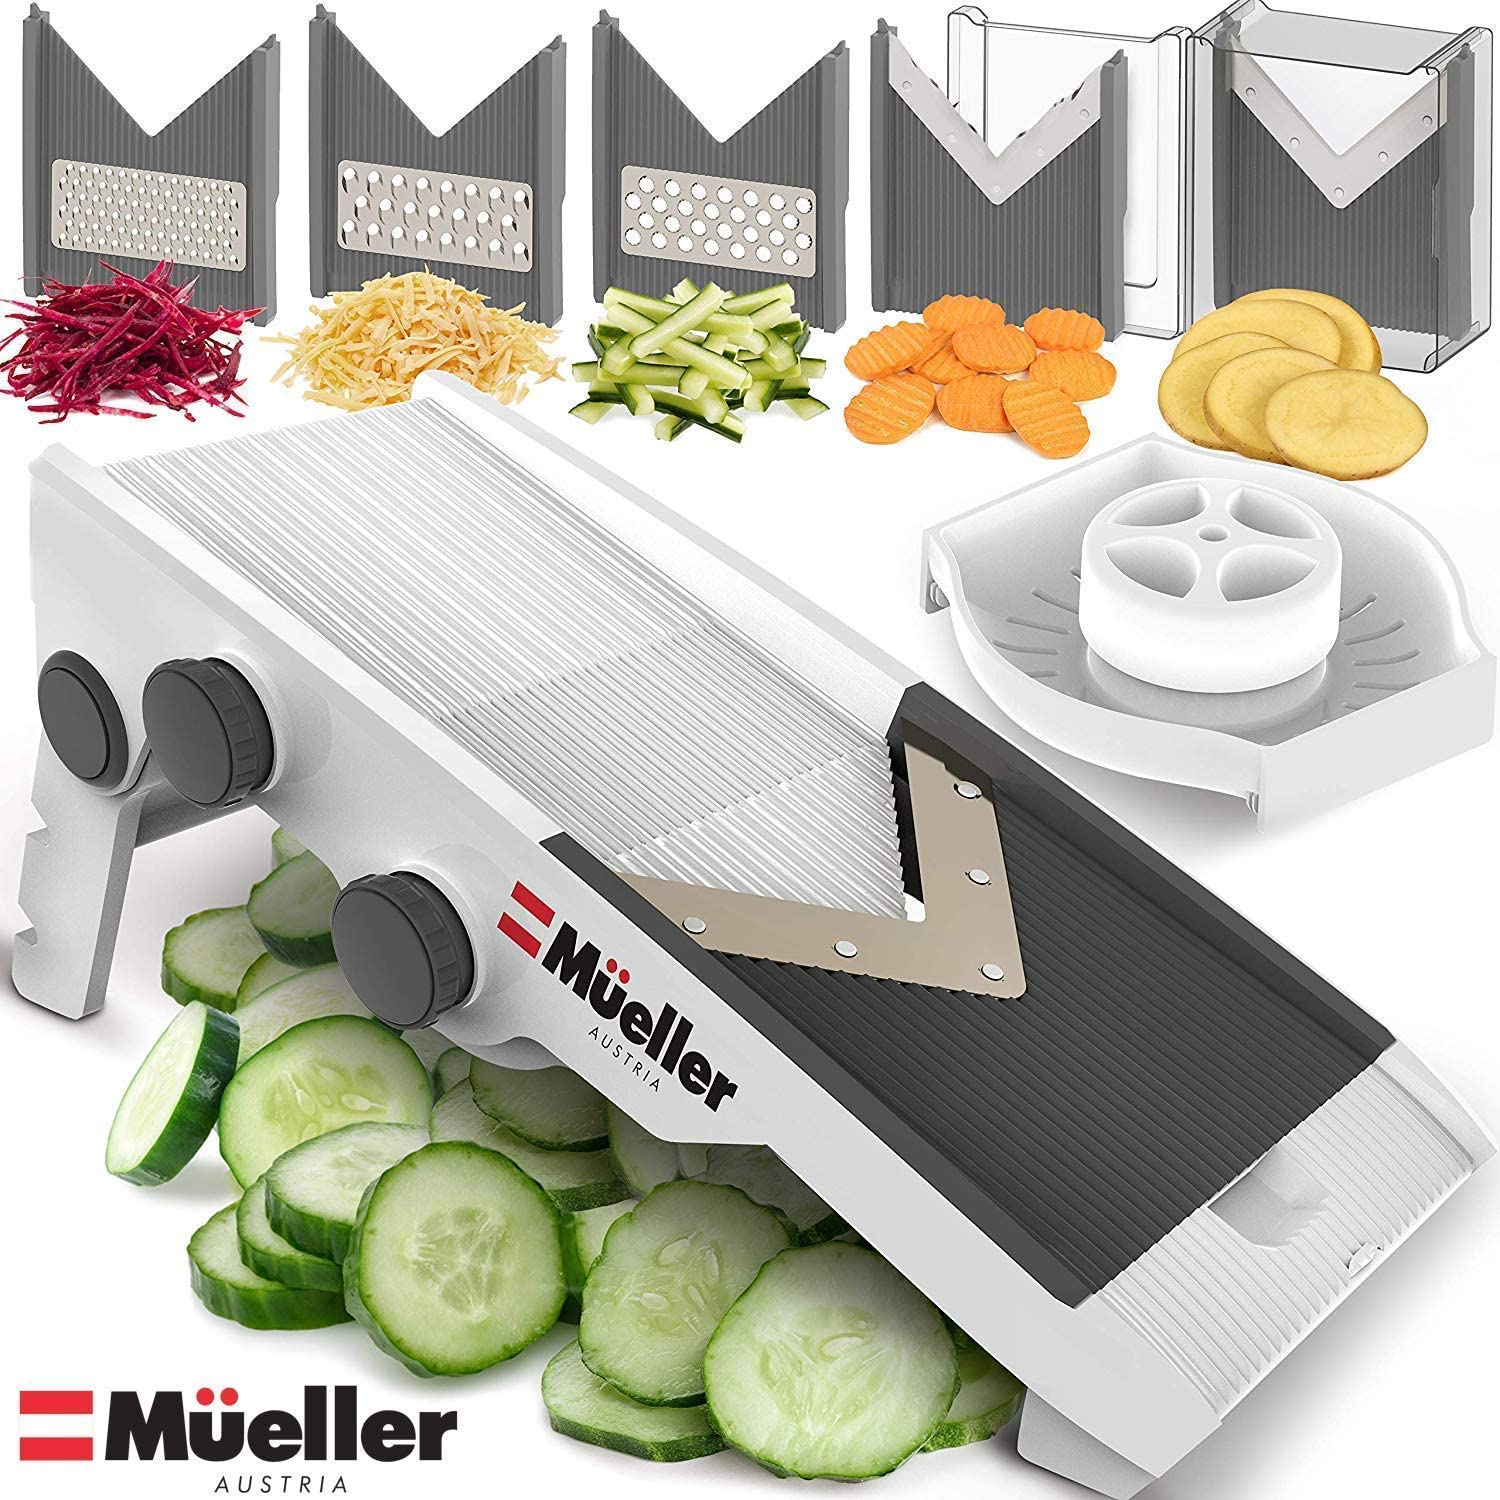 Premium V-Pro Precise Multi Blade Adjustable Mandoline, Slicer, Cutter, Shredder